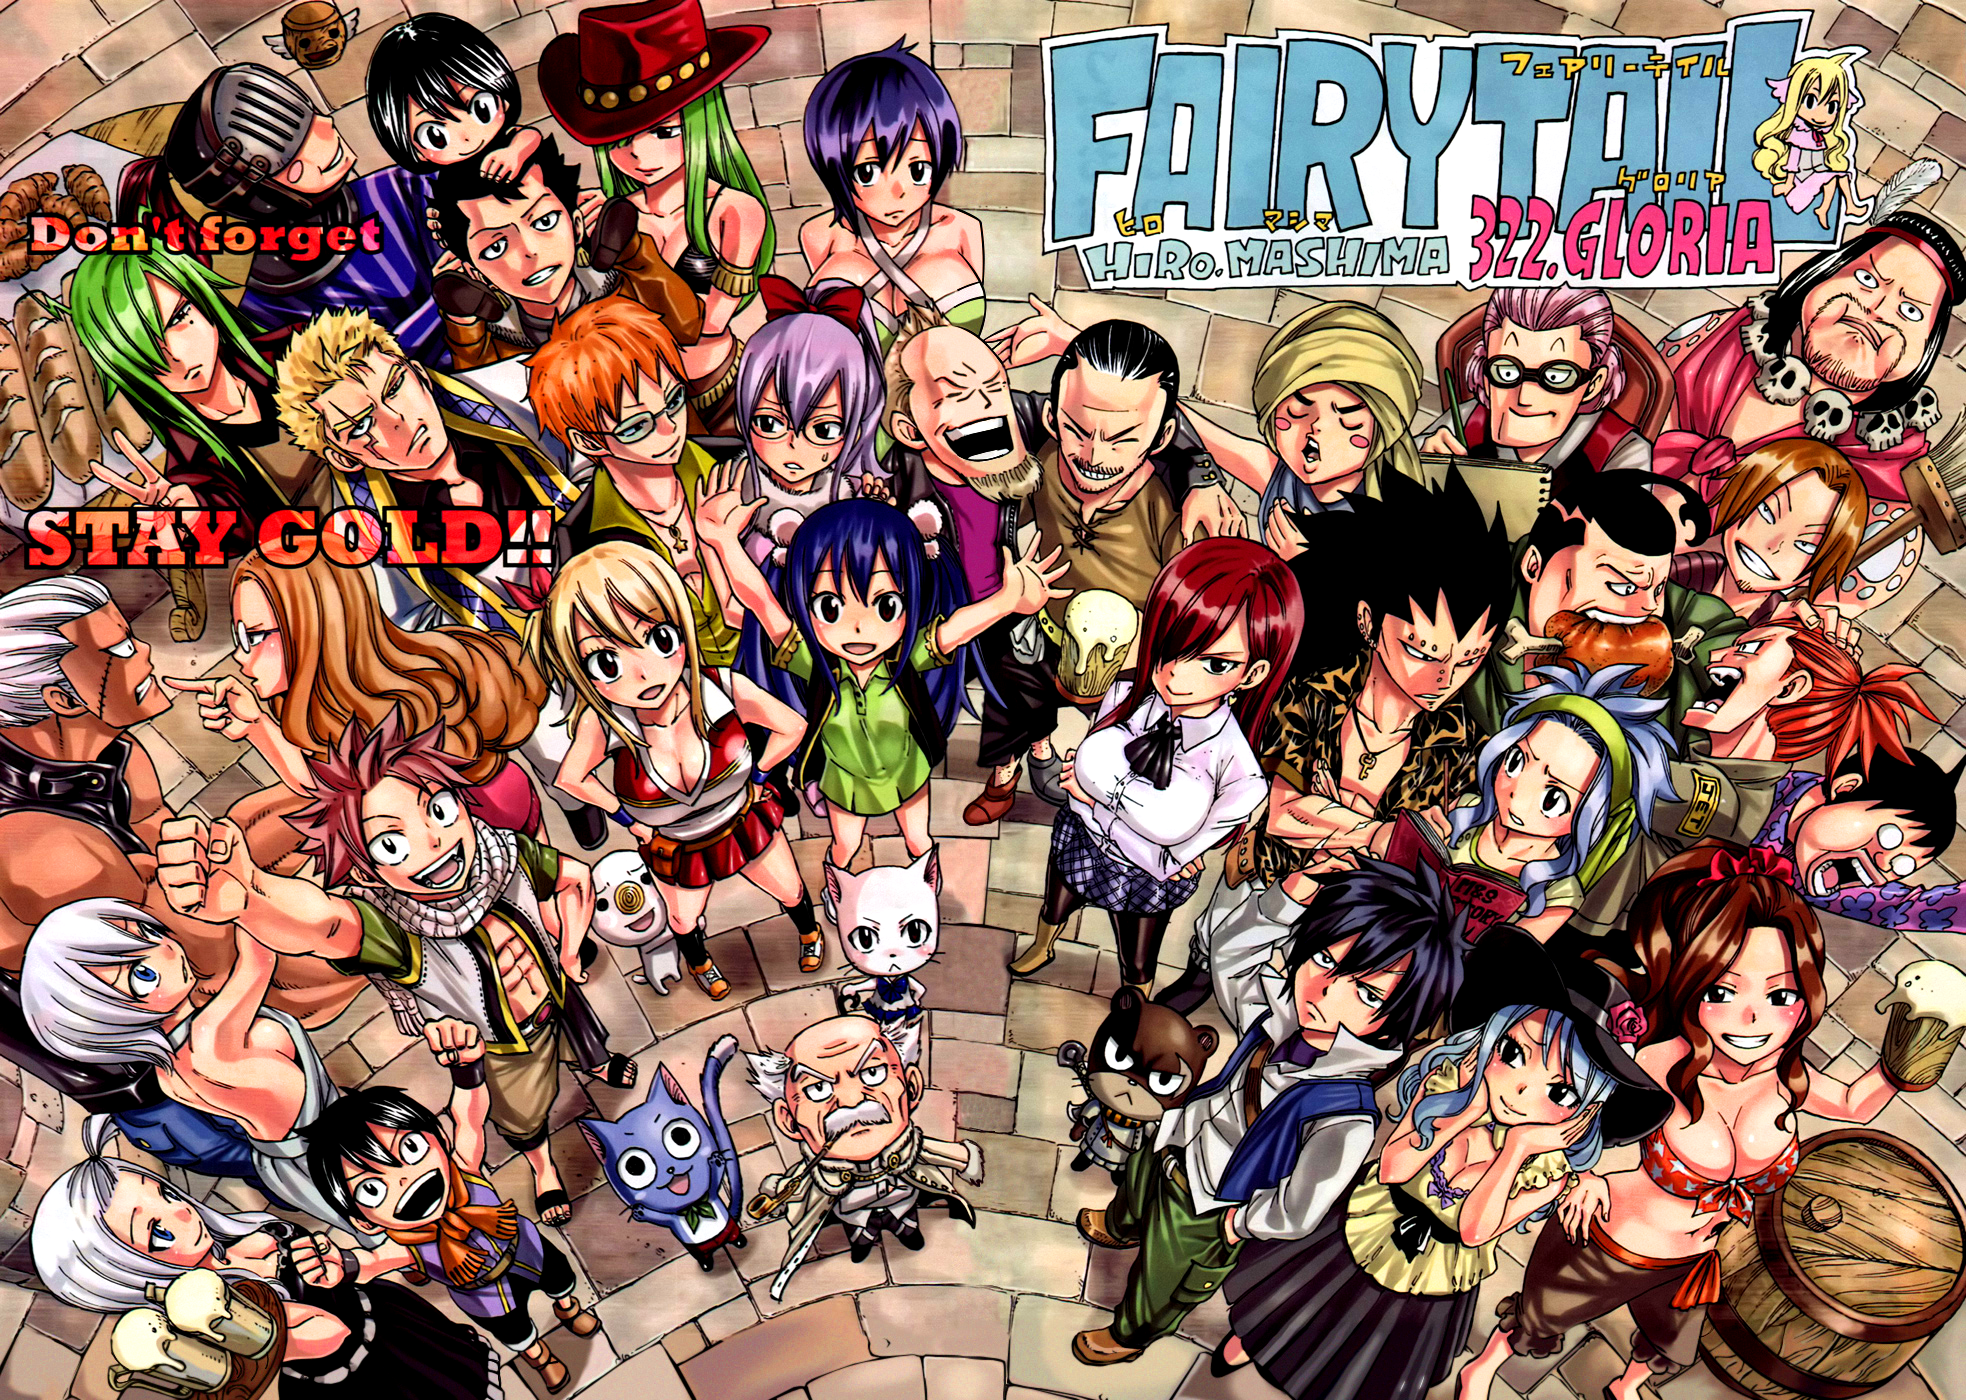 5 7 Anime Characters : Chapter fairy tail wiki fandom powered by wikia